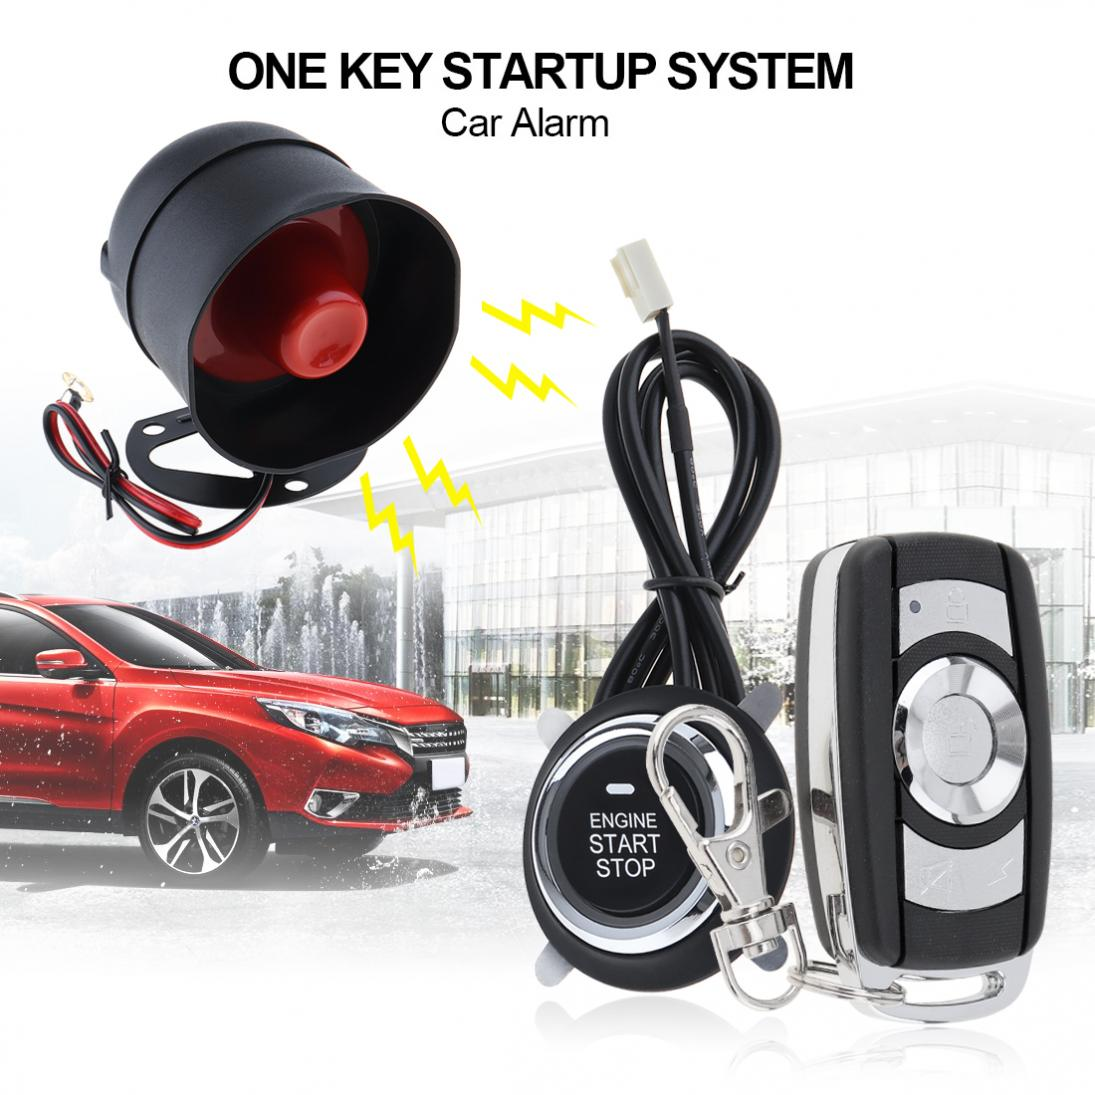 12V Car Alarm System Remote Start Stop Engine System with Auto Central Lock and Keyless Entry 5A with Key 2 smart haa flip key pke car alarm system push start remote start stop engine auto central door lock with shock sensor